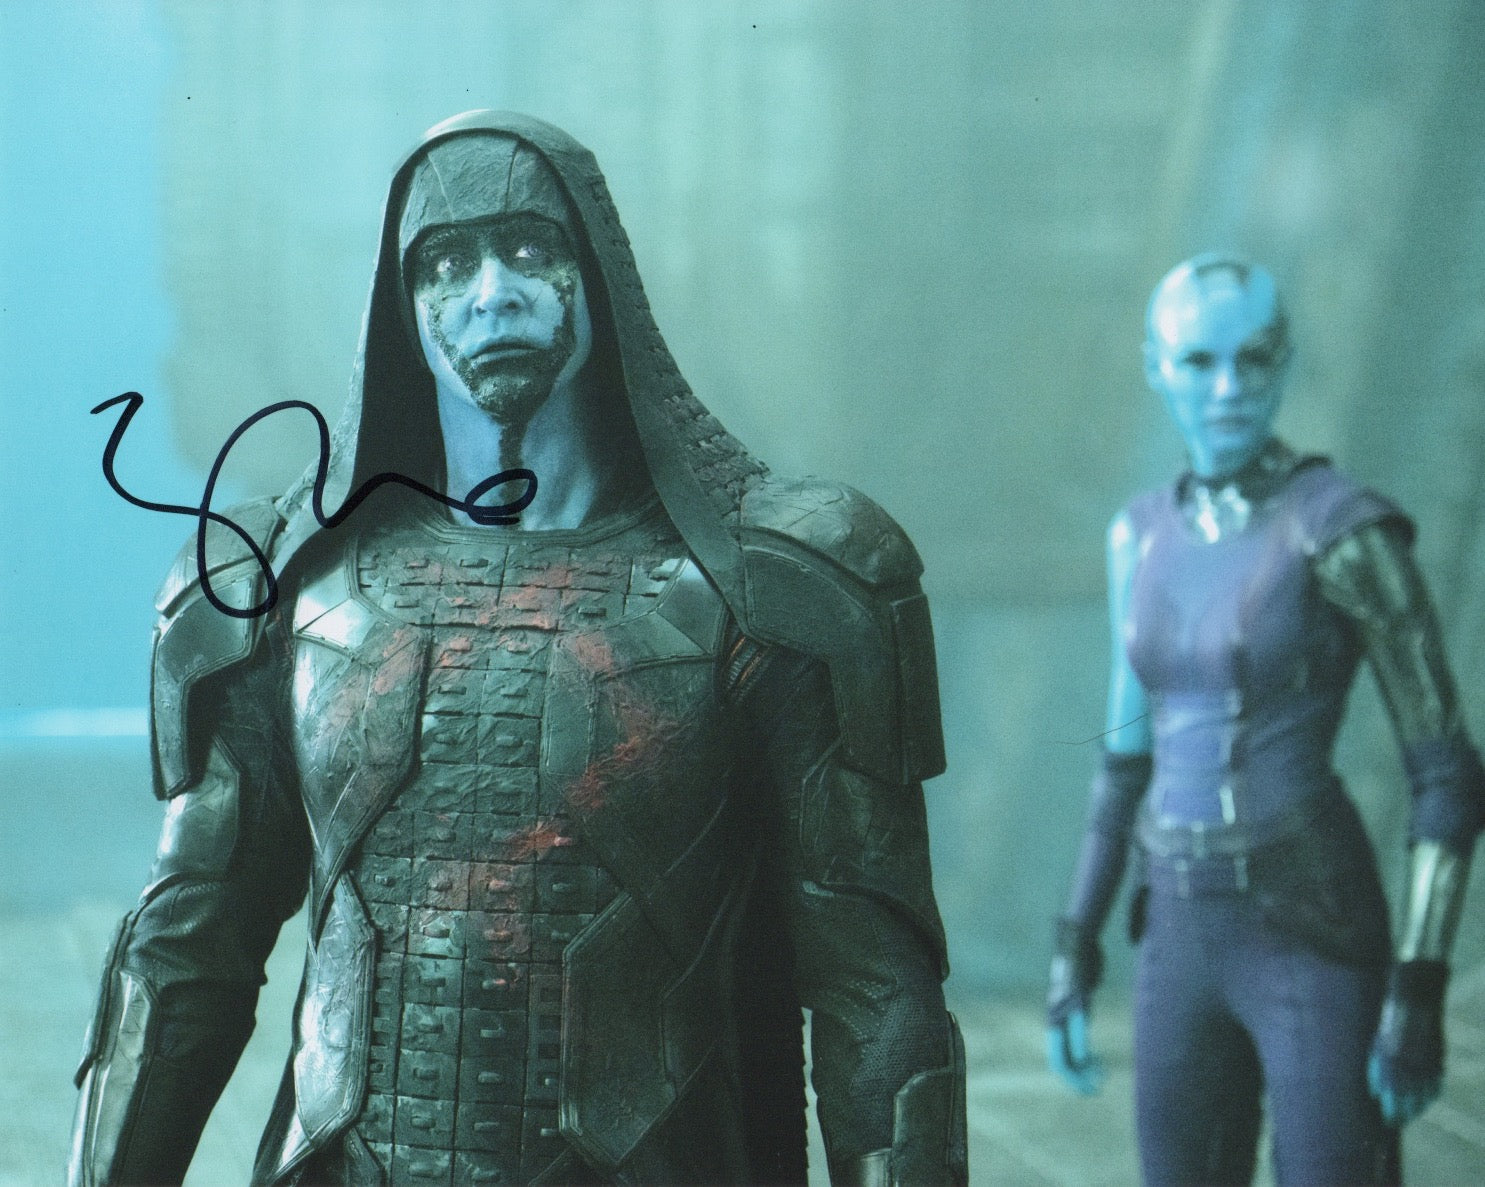 Lee Pace Guardians of the Galaxy Signed Autograph 8x10 Photo #6 - Outlaw Hobbies Authentic Autographs